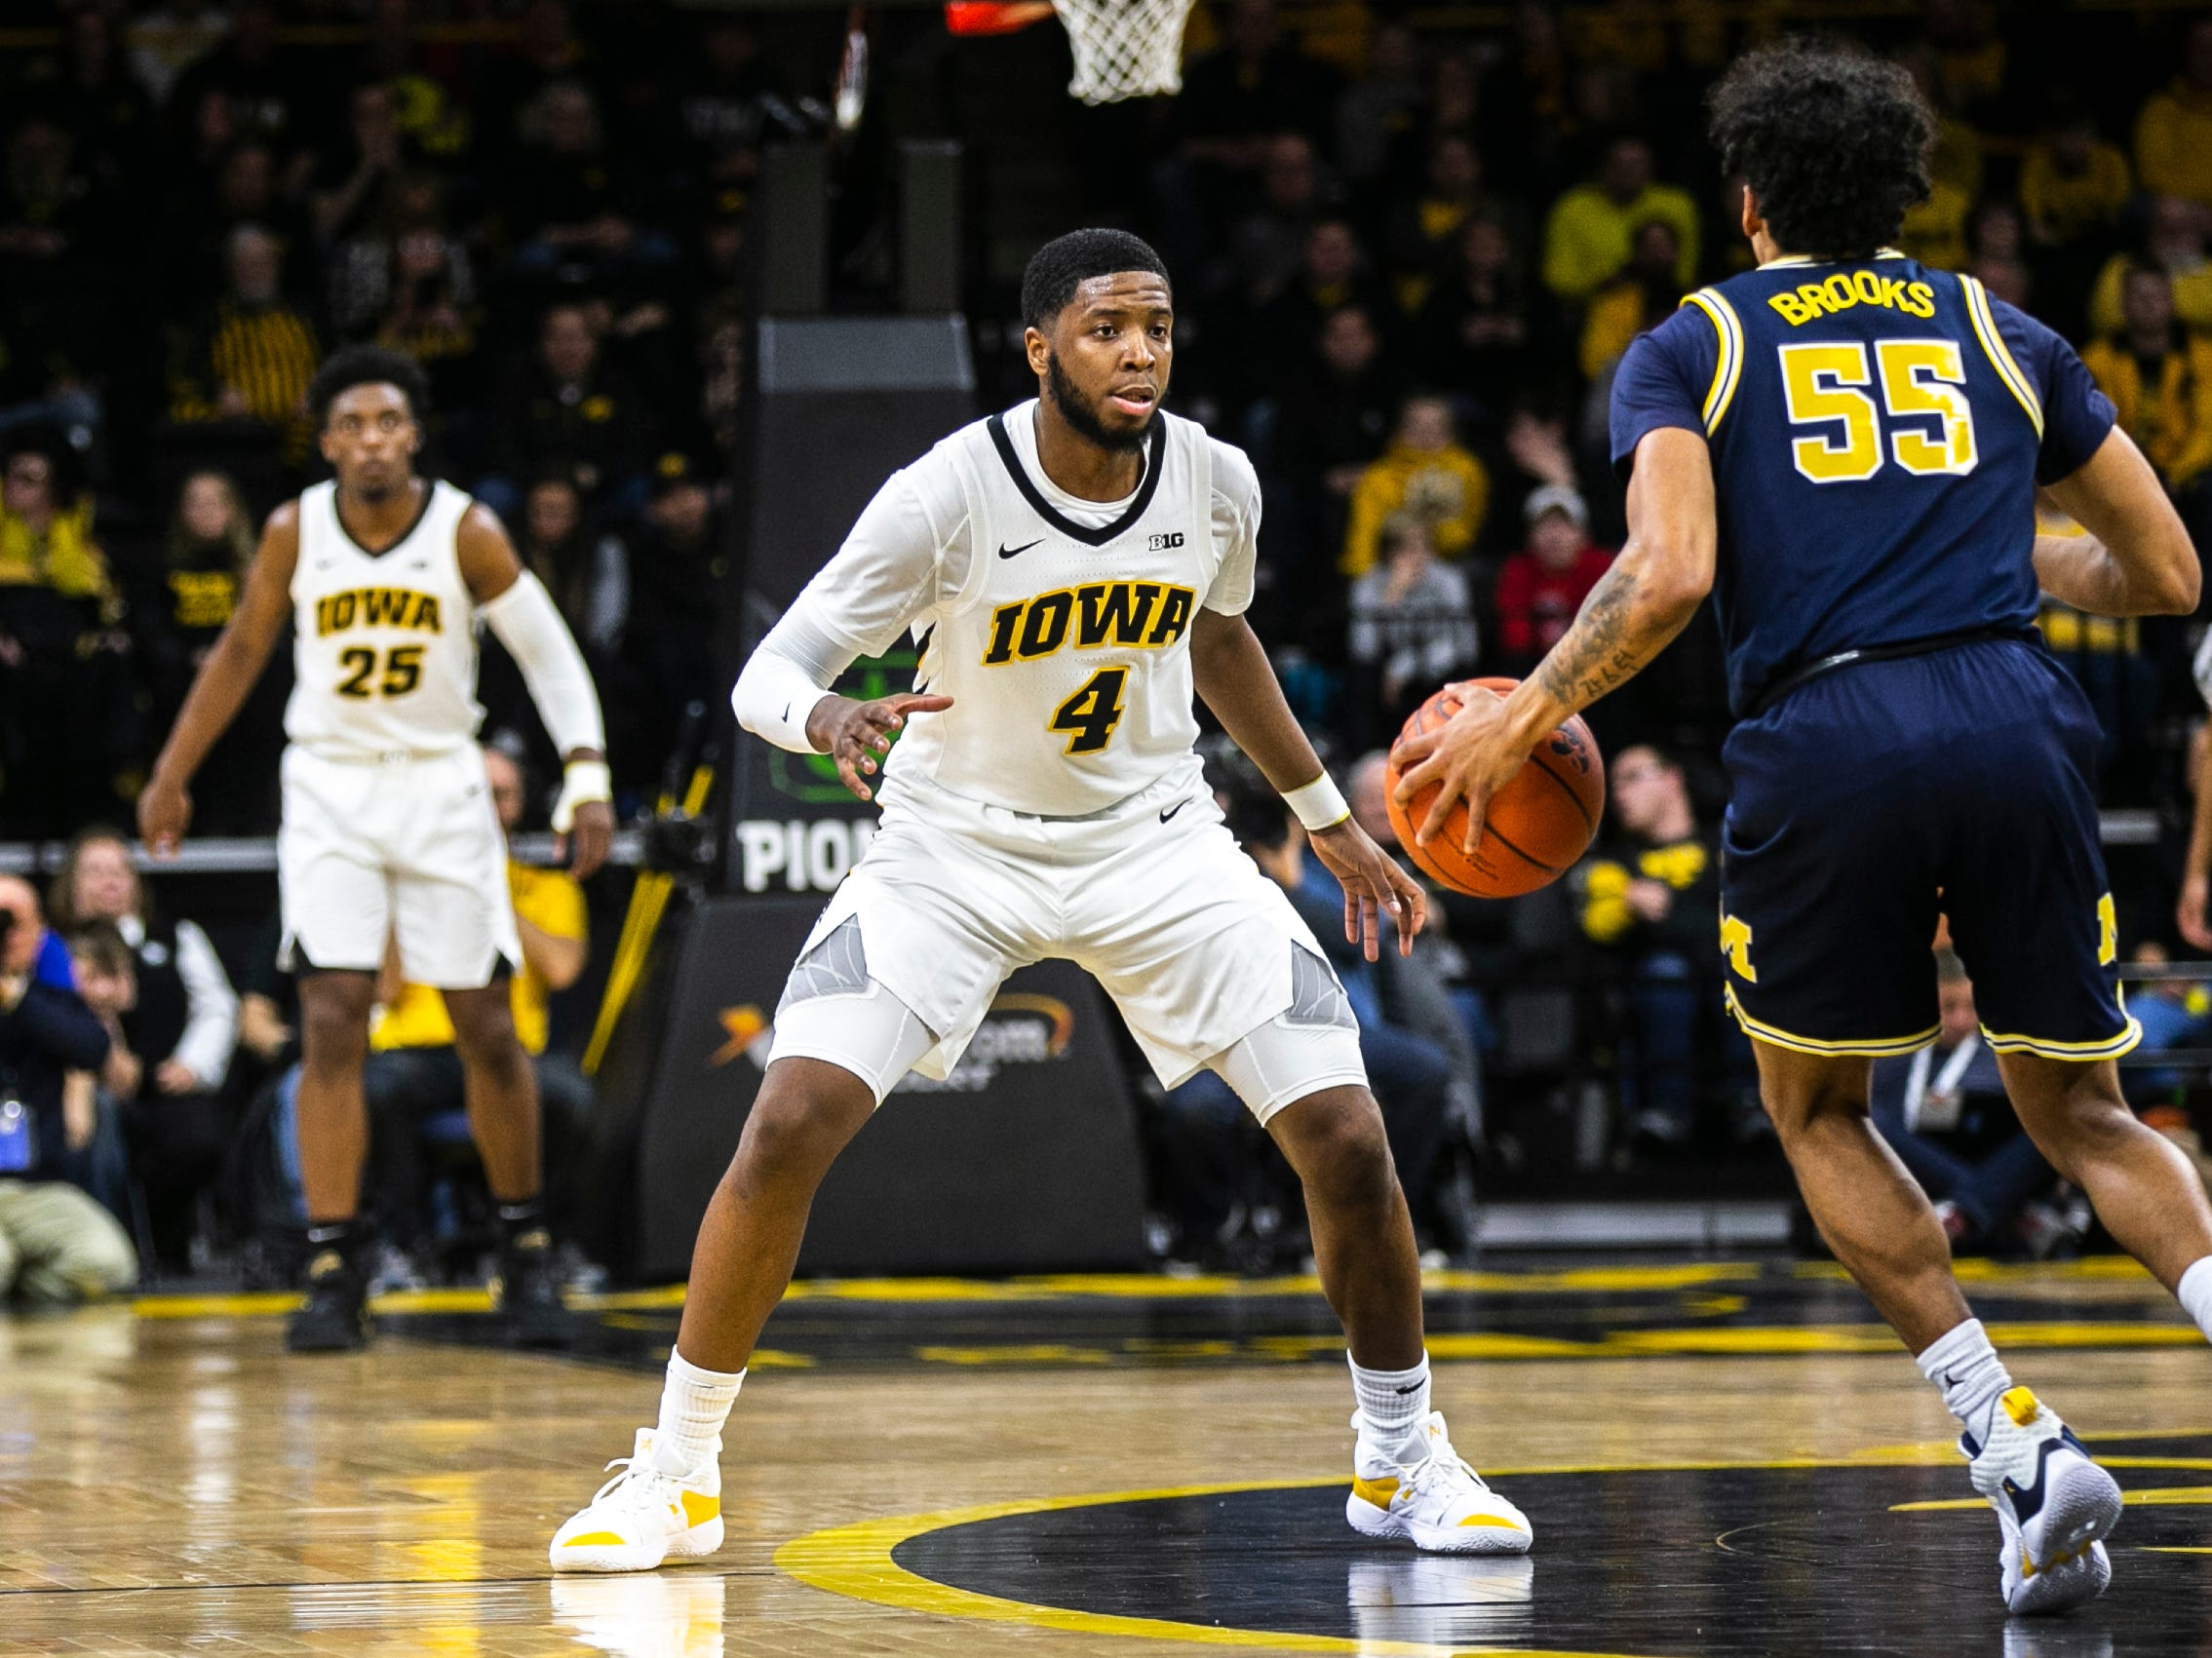 Iowa guard Isaiah Moss (4) defends Michigan guard Eli Brooks (55) during a NCAA Big Ten Conference men's basketball game on Friday, Feb. 1, 2019, at Carver-Hawkeye Arena in Iowa City, Iowa.